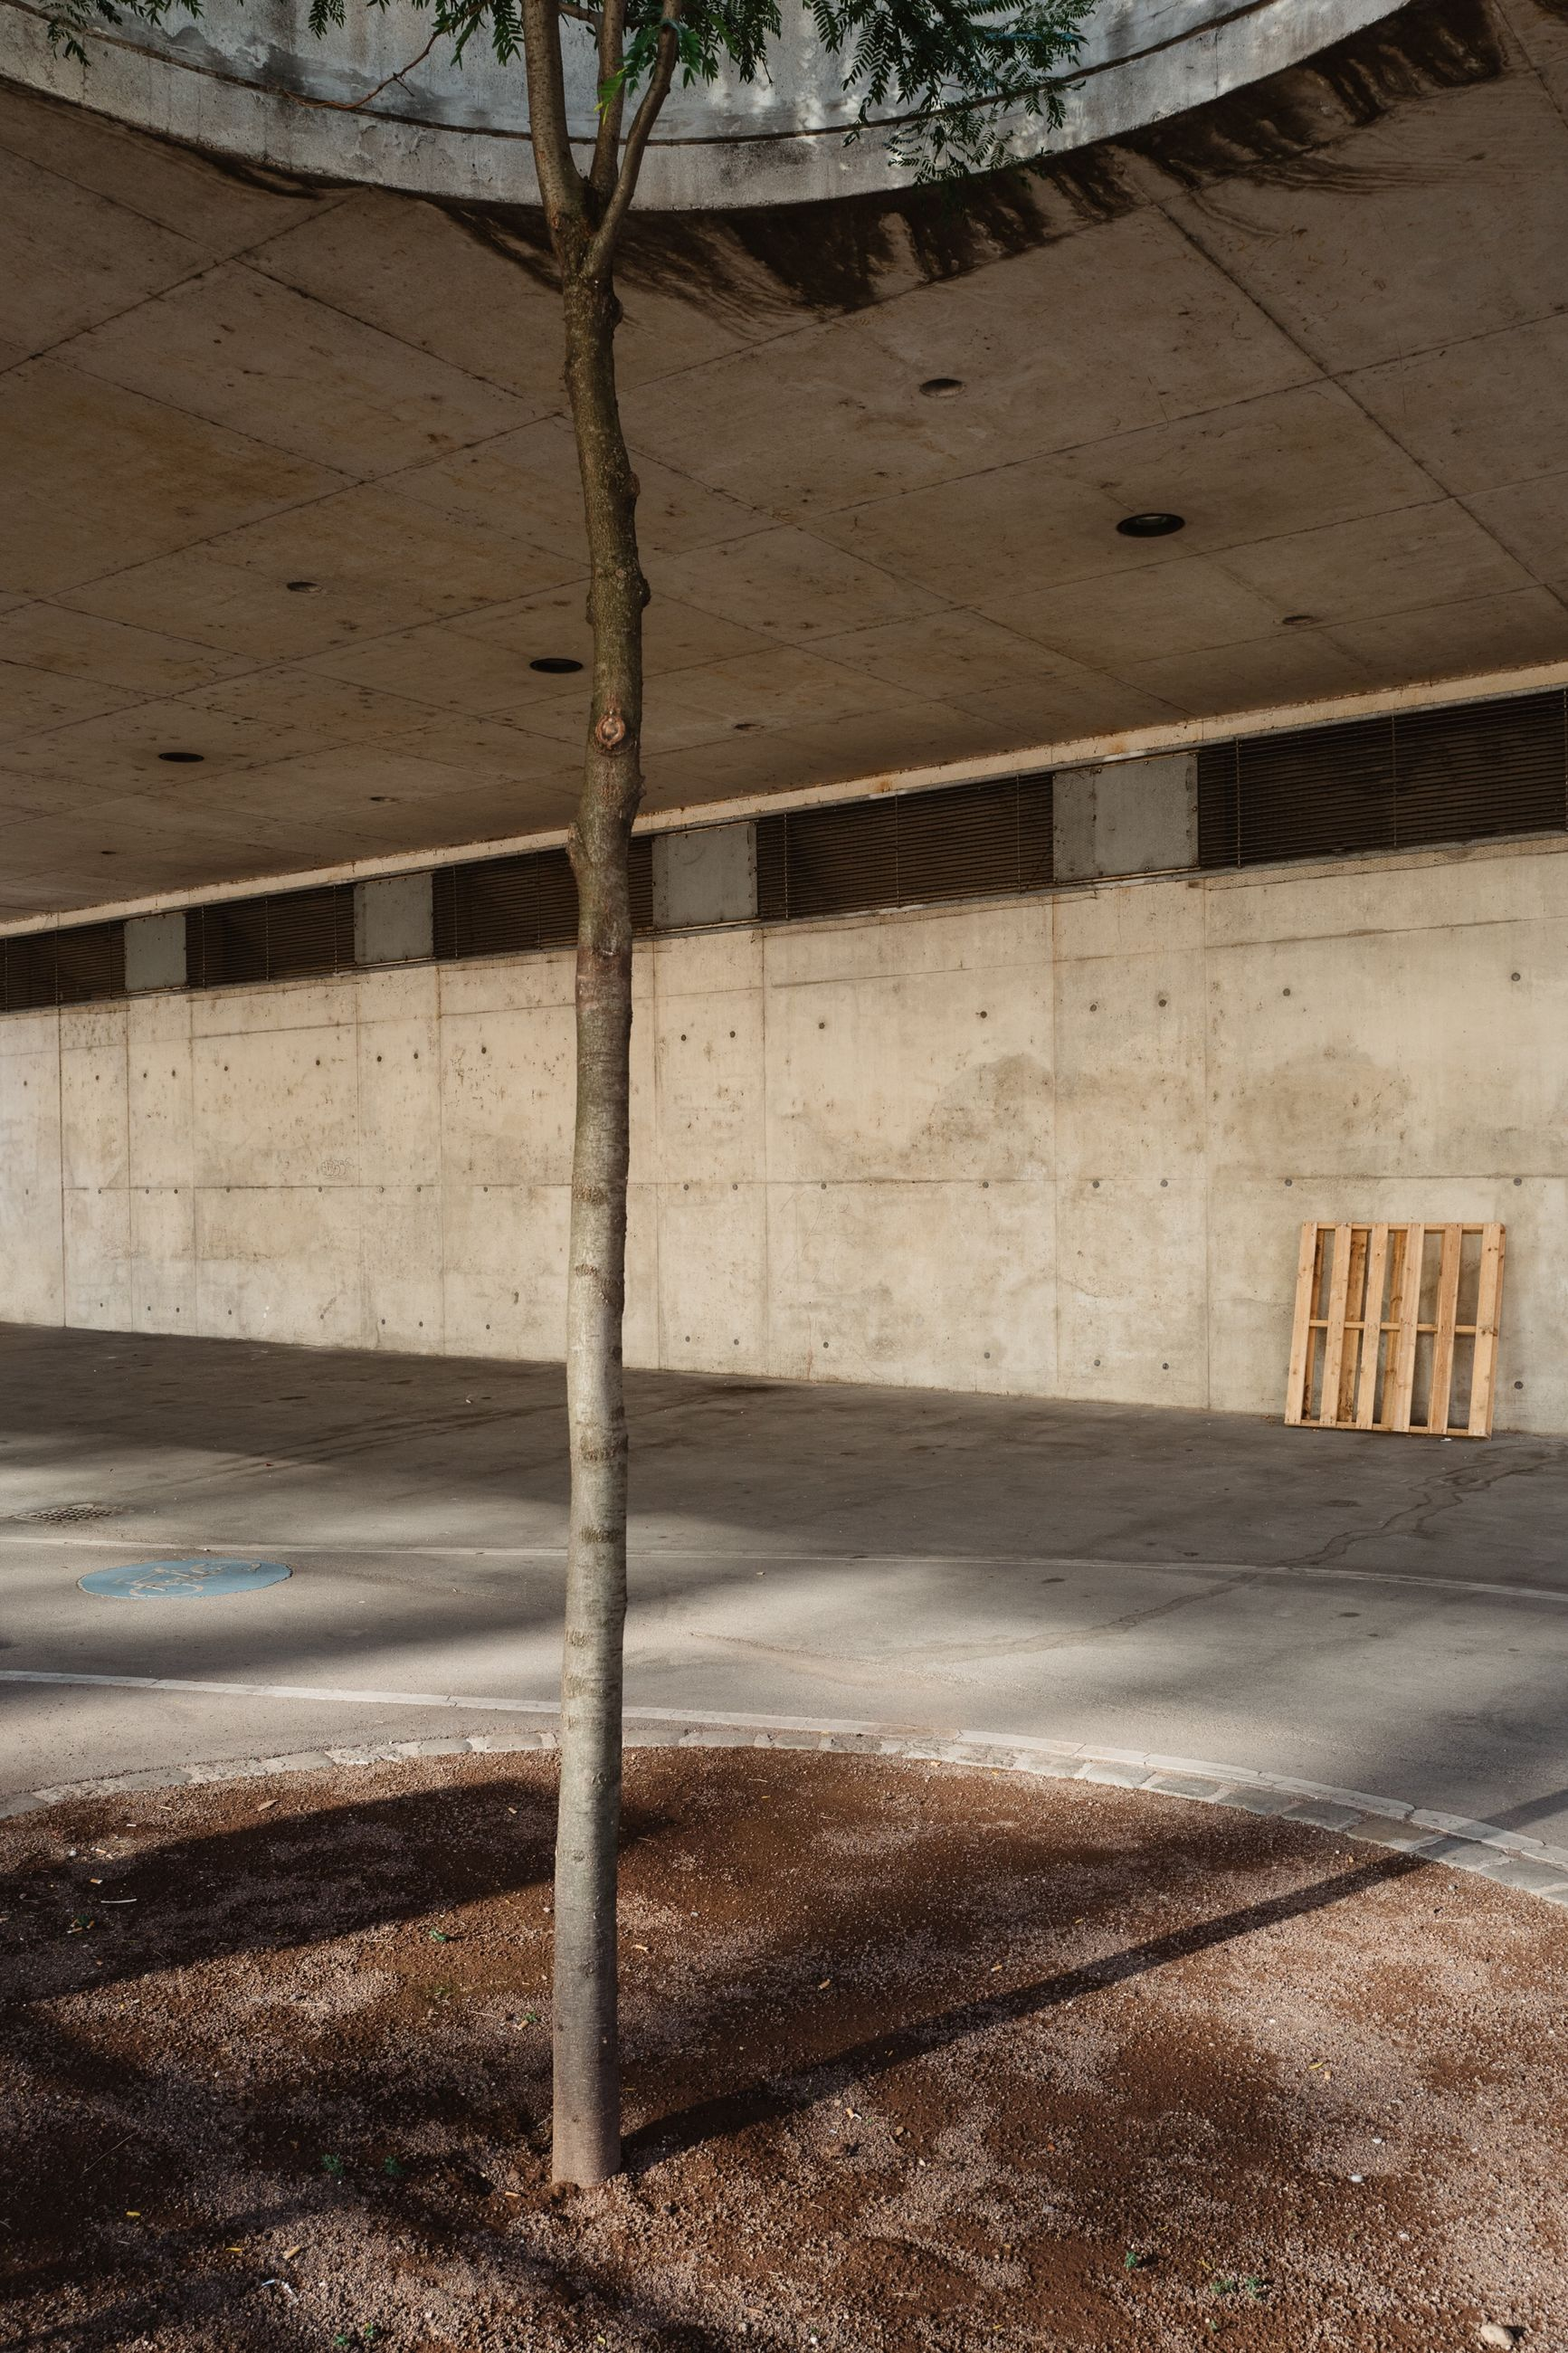 architecture, built structure, no people, architectural column, sunlight, day, nature, abandoned, shadow, empty, outdoors, building, absence, parking lot, flooring, city, transportation, road, ceiling, parking garage